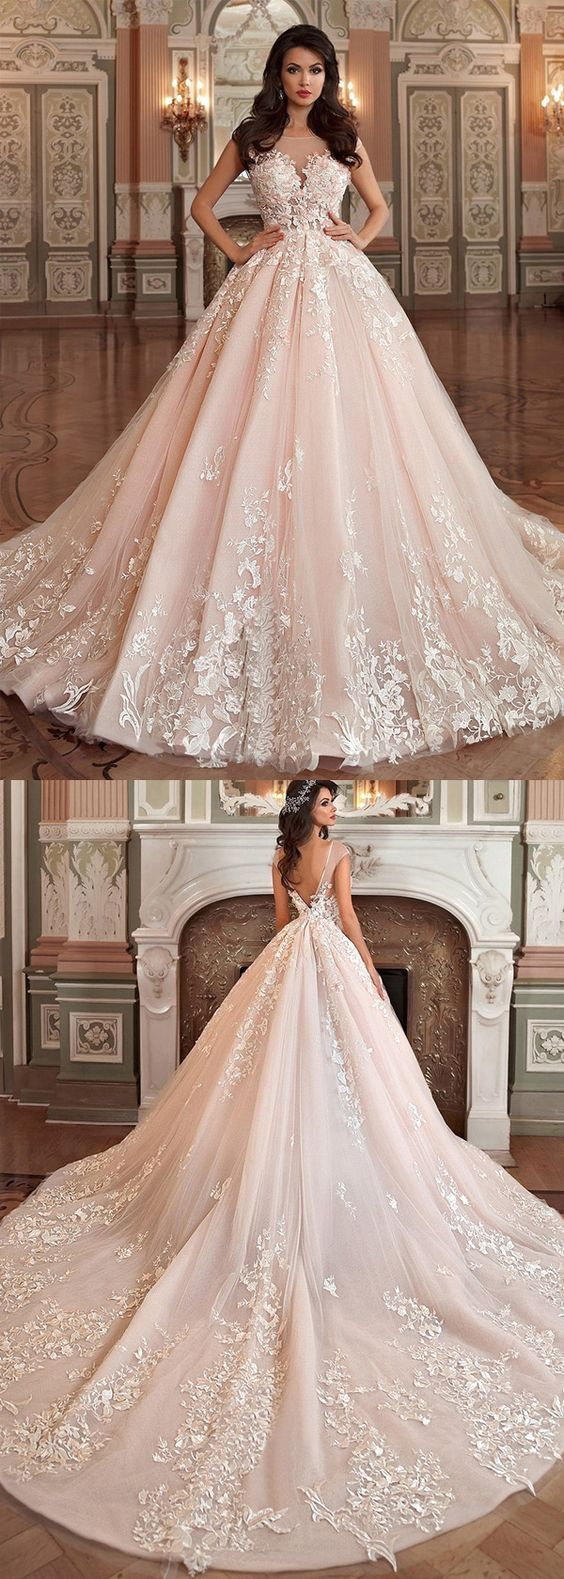 Stunning Tulle & Organza Bateau Neckline Ball Gown Wedding Dress With Lace Appliques & 3D Flowers & Beadings,W883